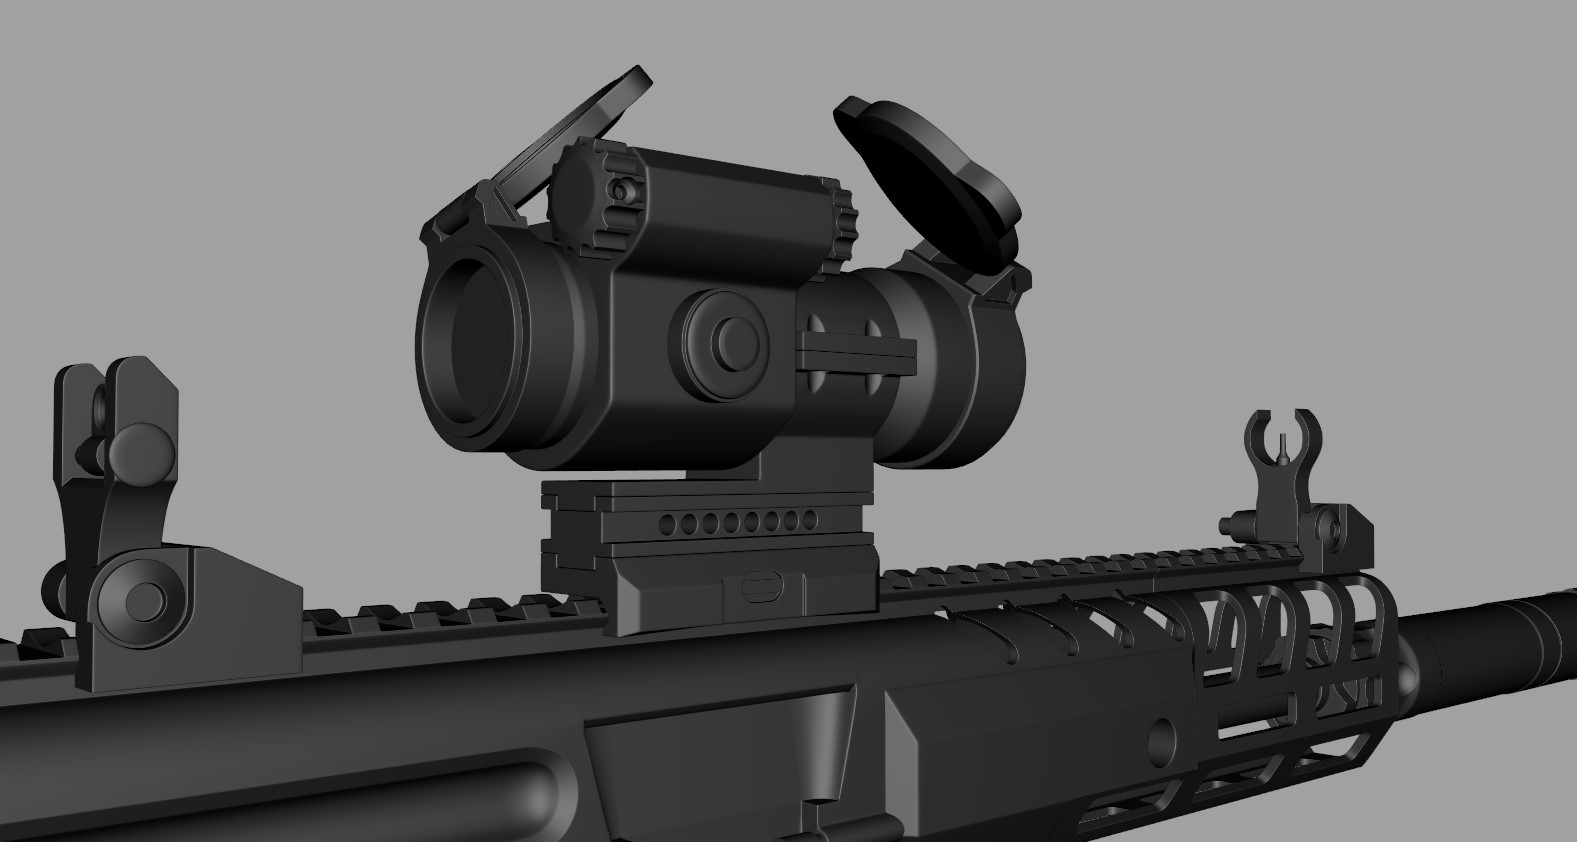 [WIP] Aftermarket MPX SMG (Looking for Criticism) — polycount